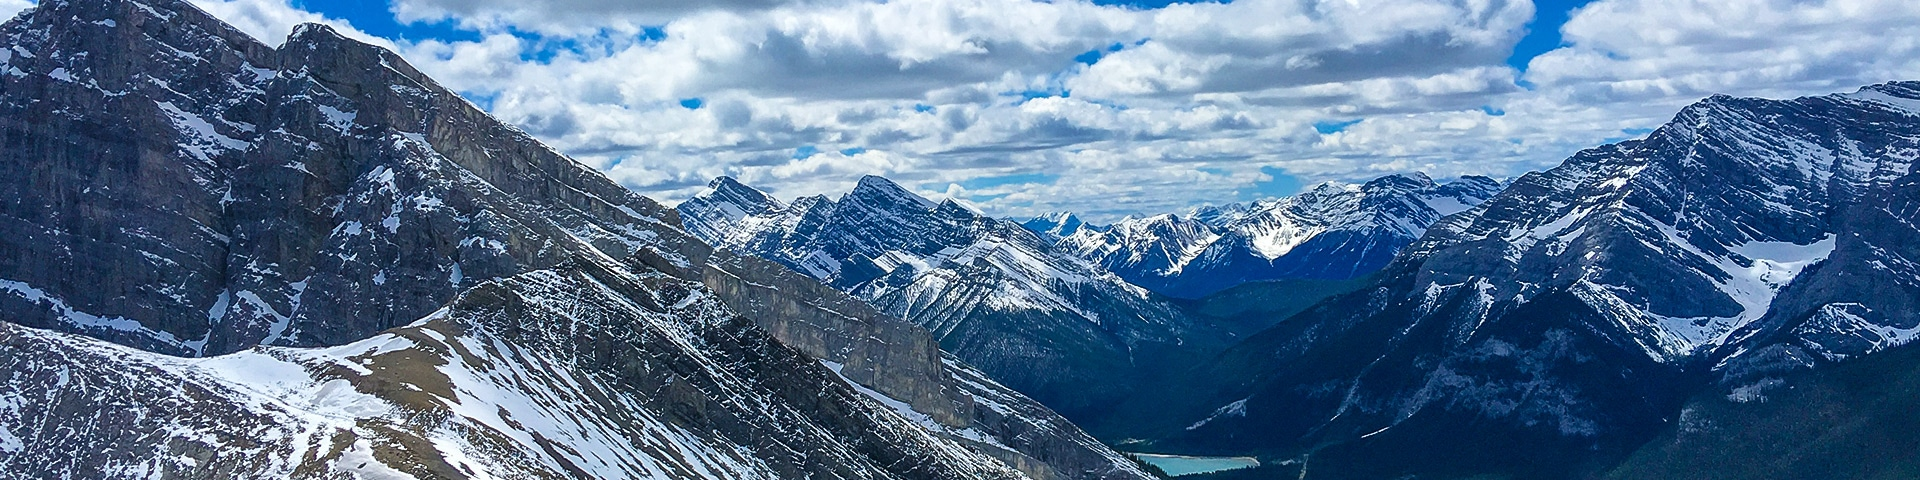 Panorama from the Ha Ling Peak hike in Canmore, the Canadian Rockies